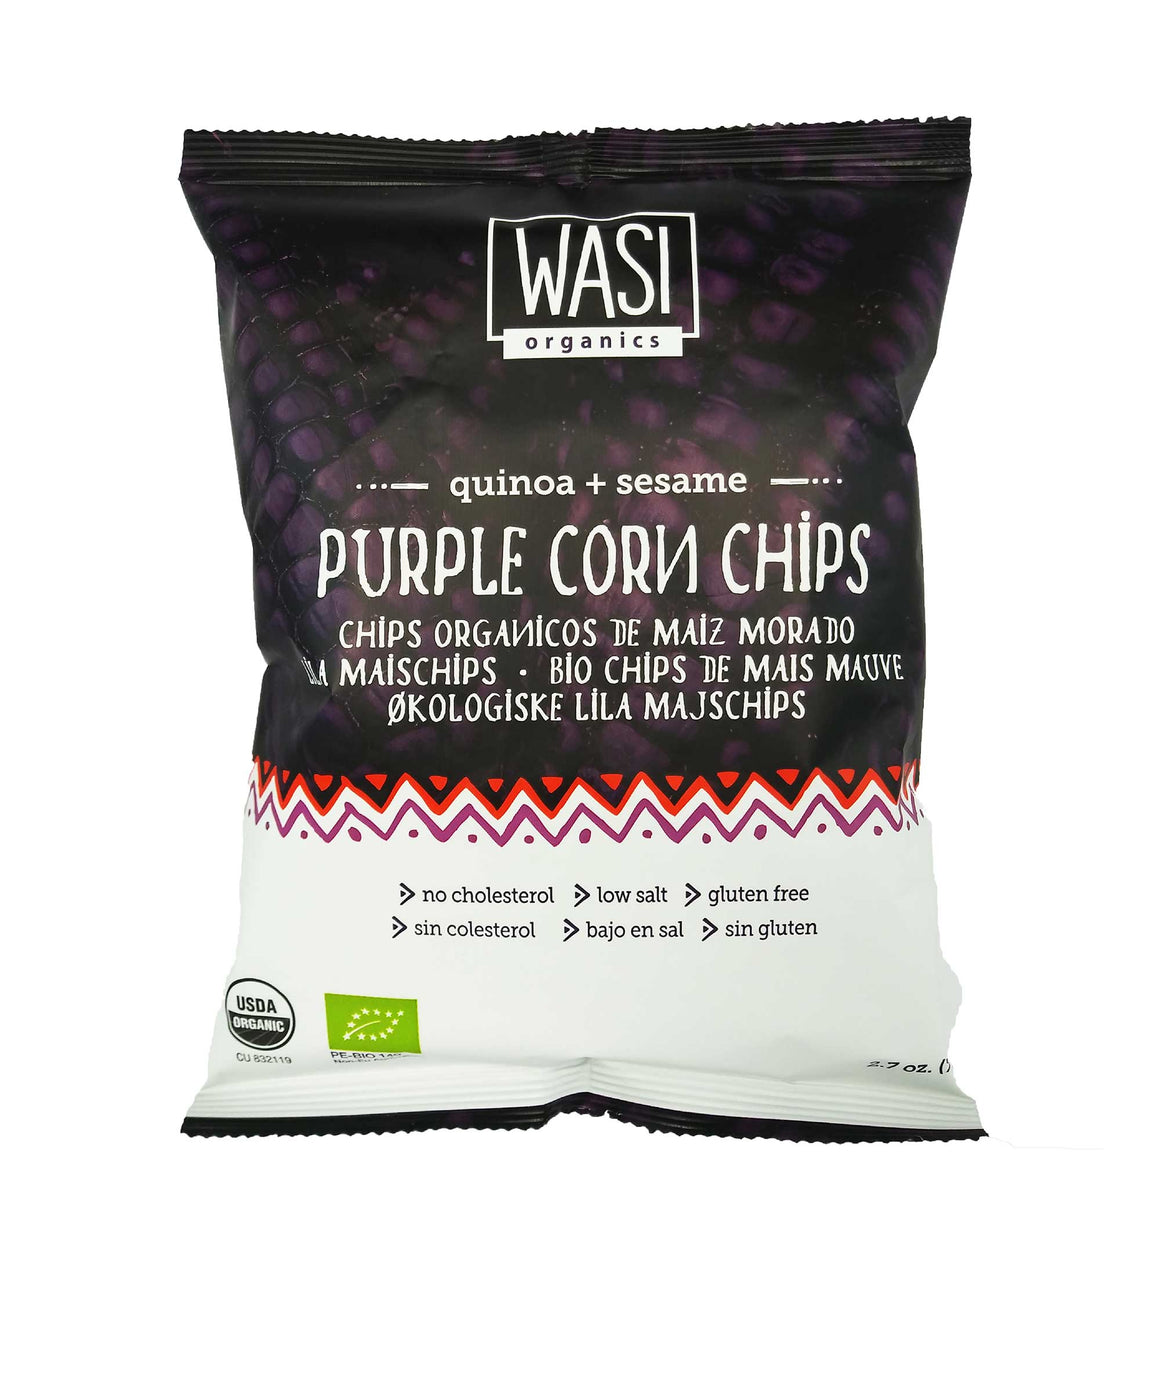 Wasi Organics Purple Corn Chips